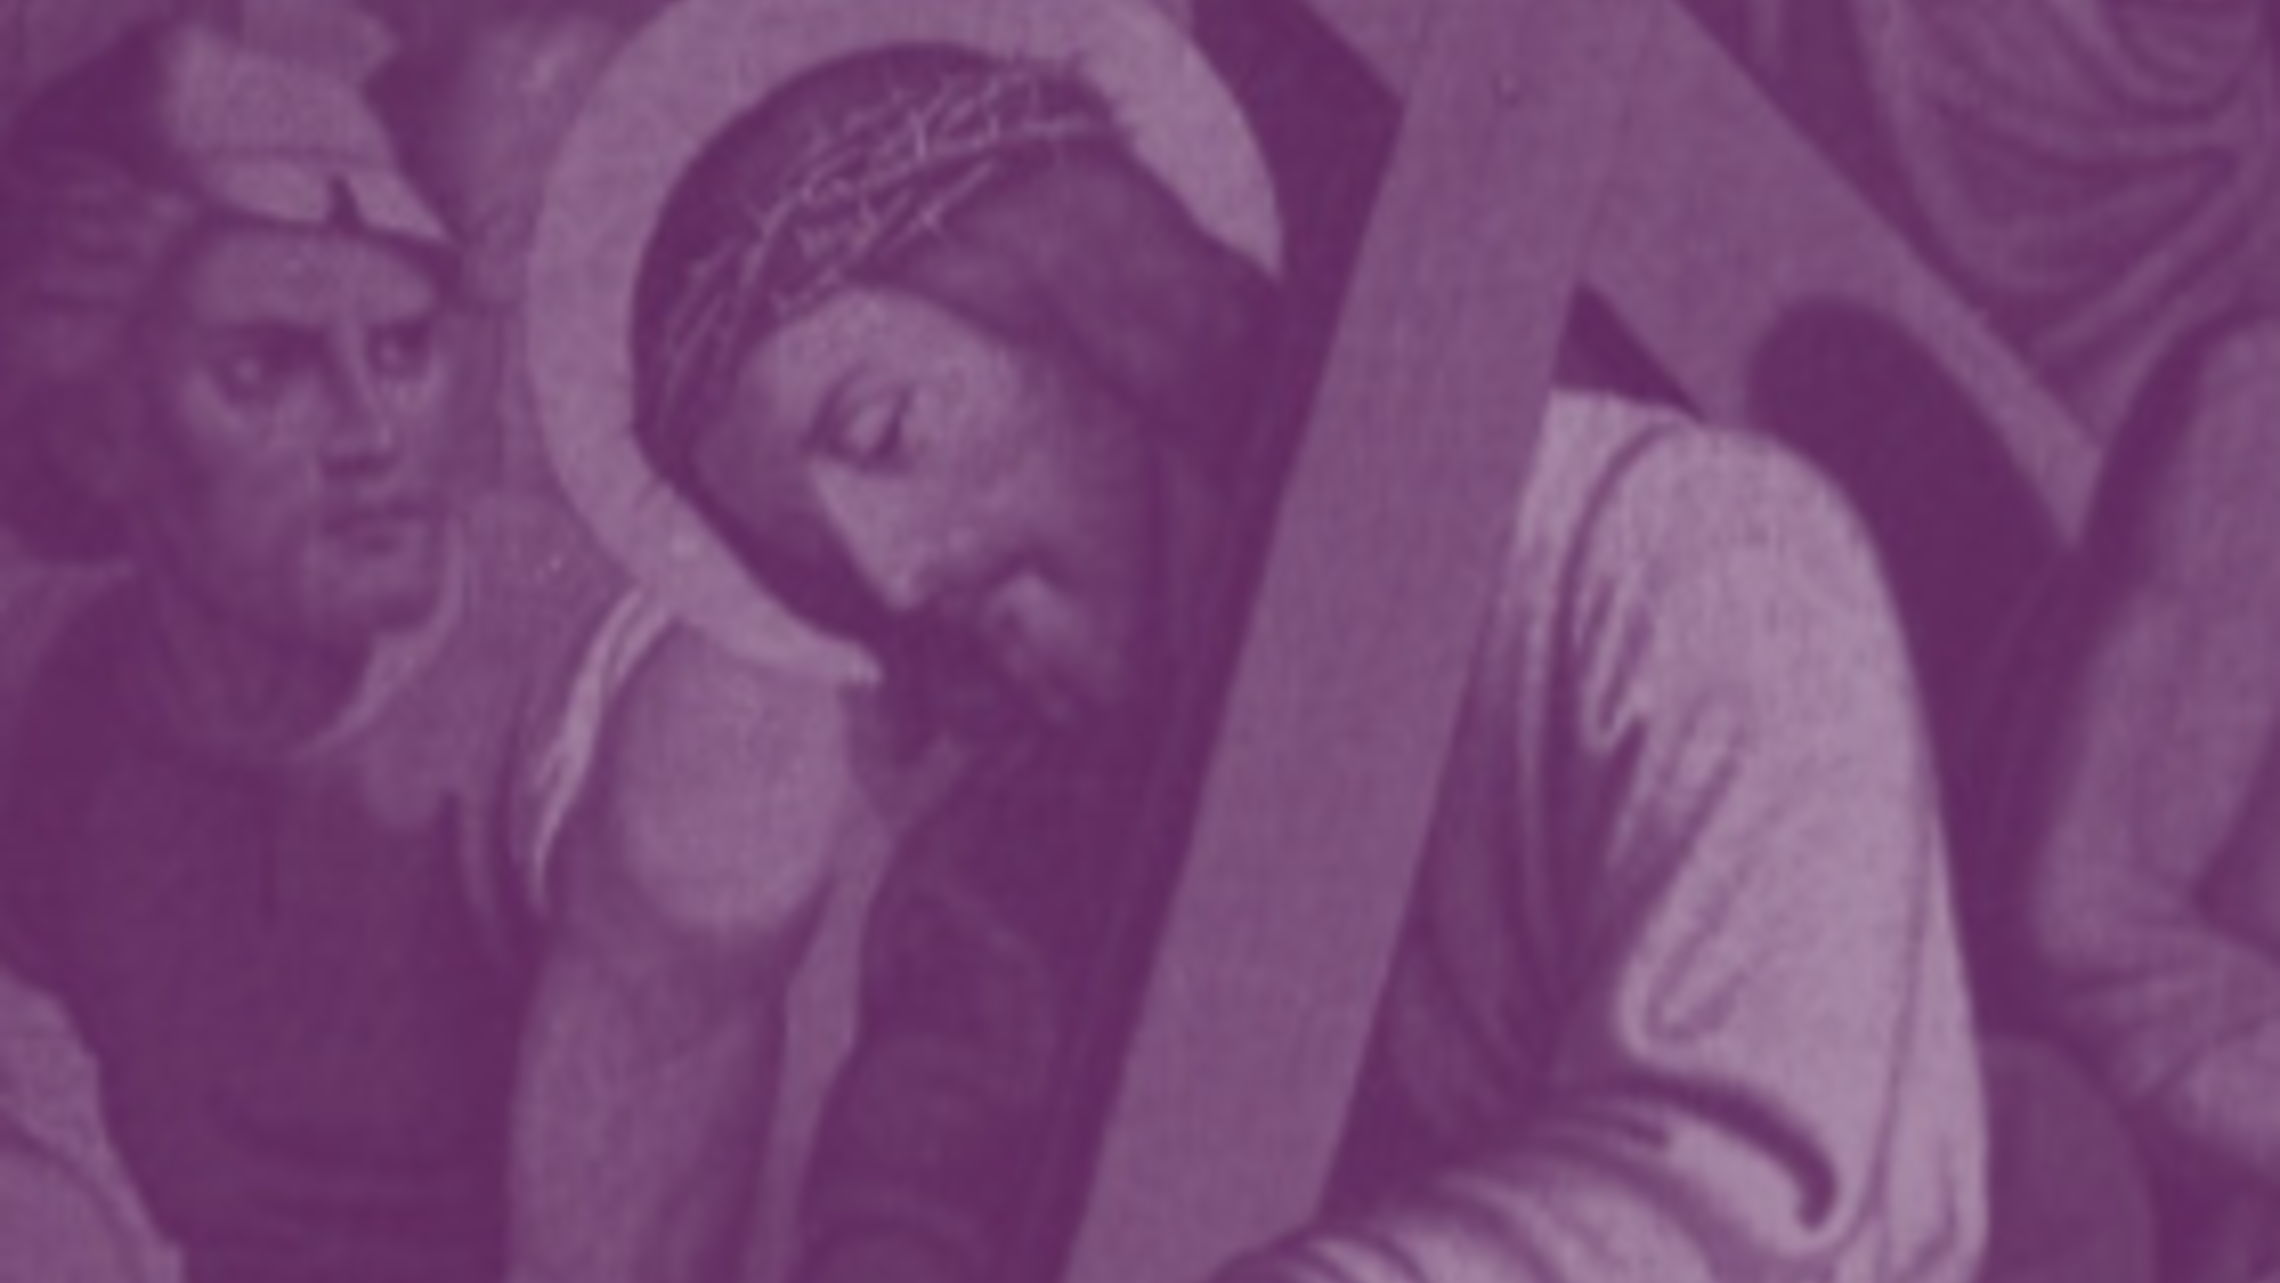 Lent, Holy Week and the Triduum at Shrewsbury